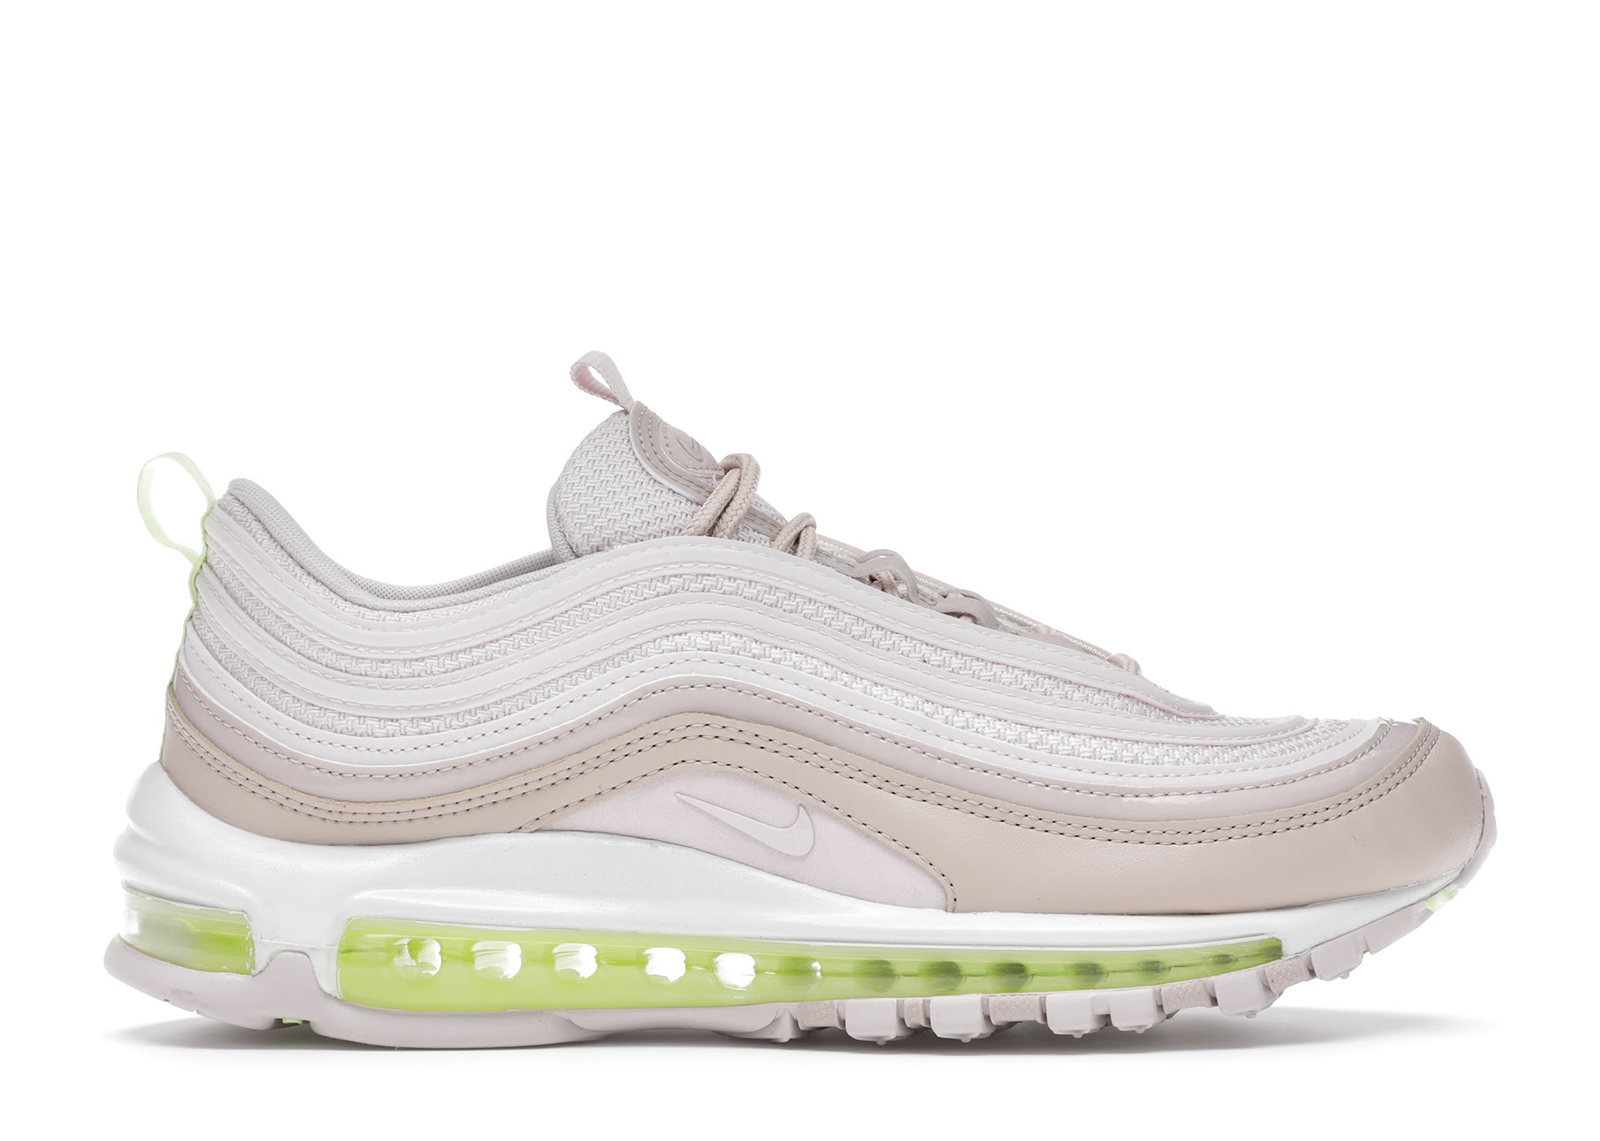 Nike Air Max 97 Barely Rose Volt (W) - CI7388-600